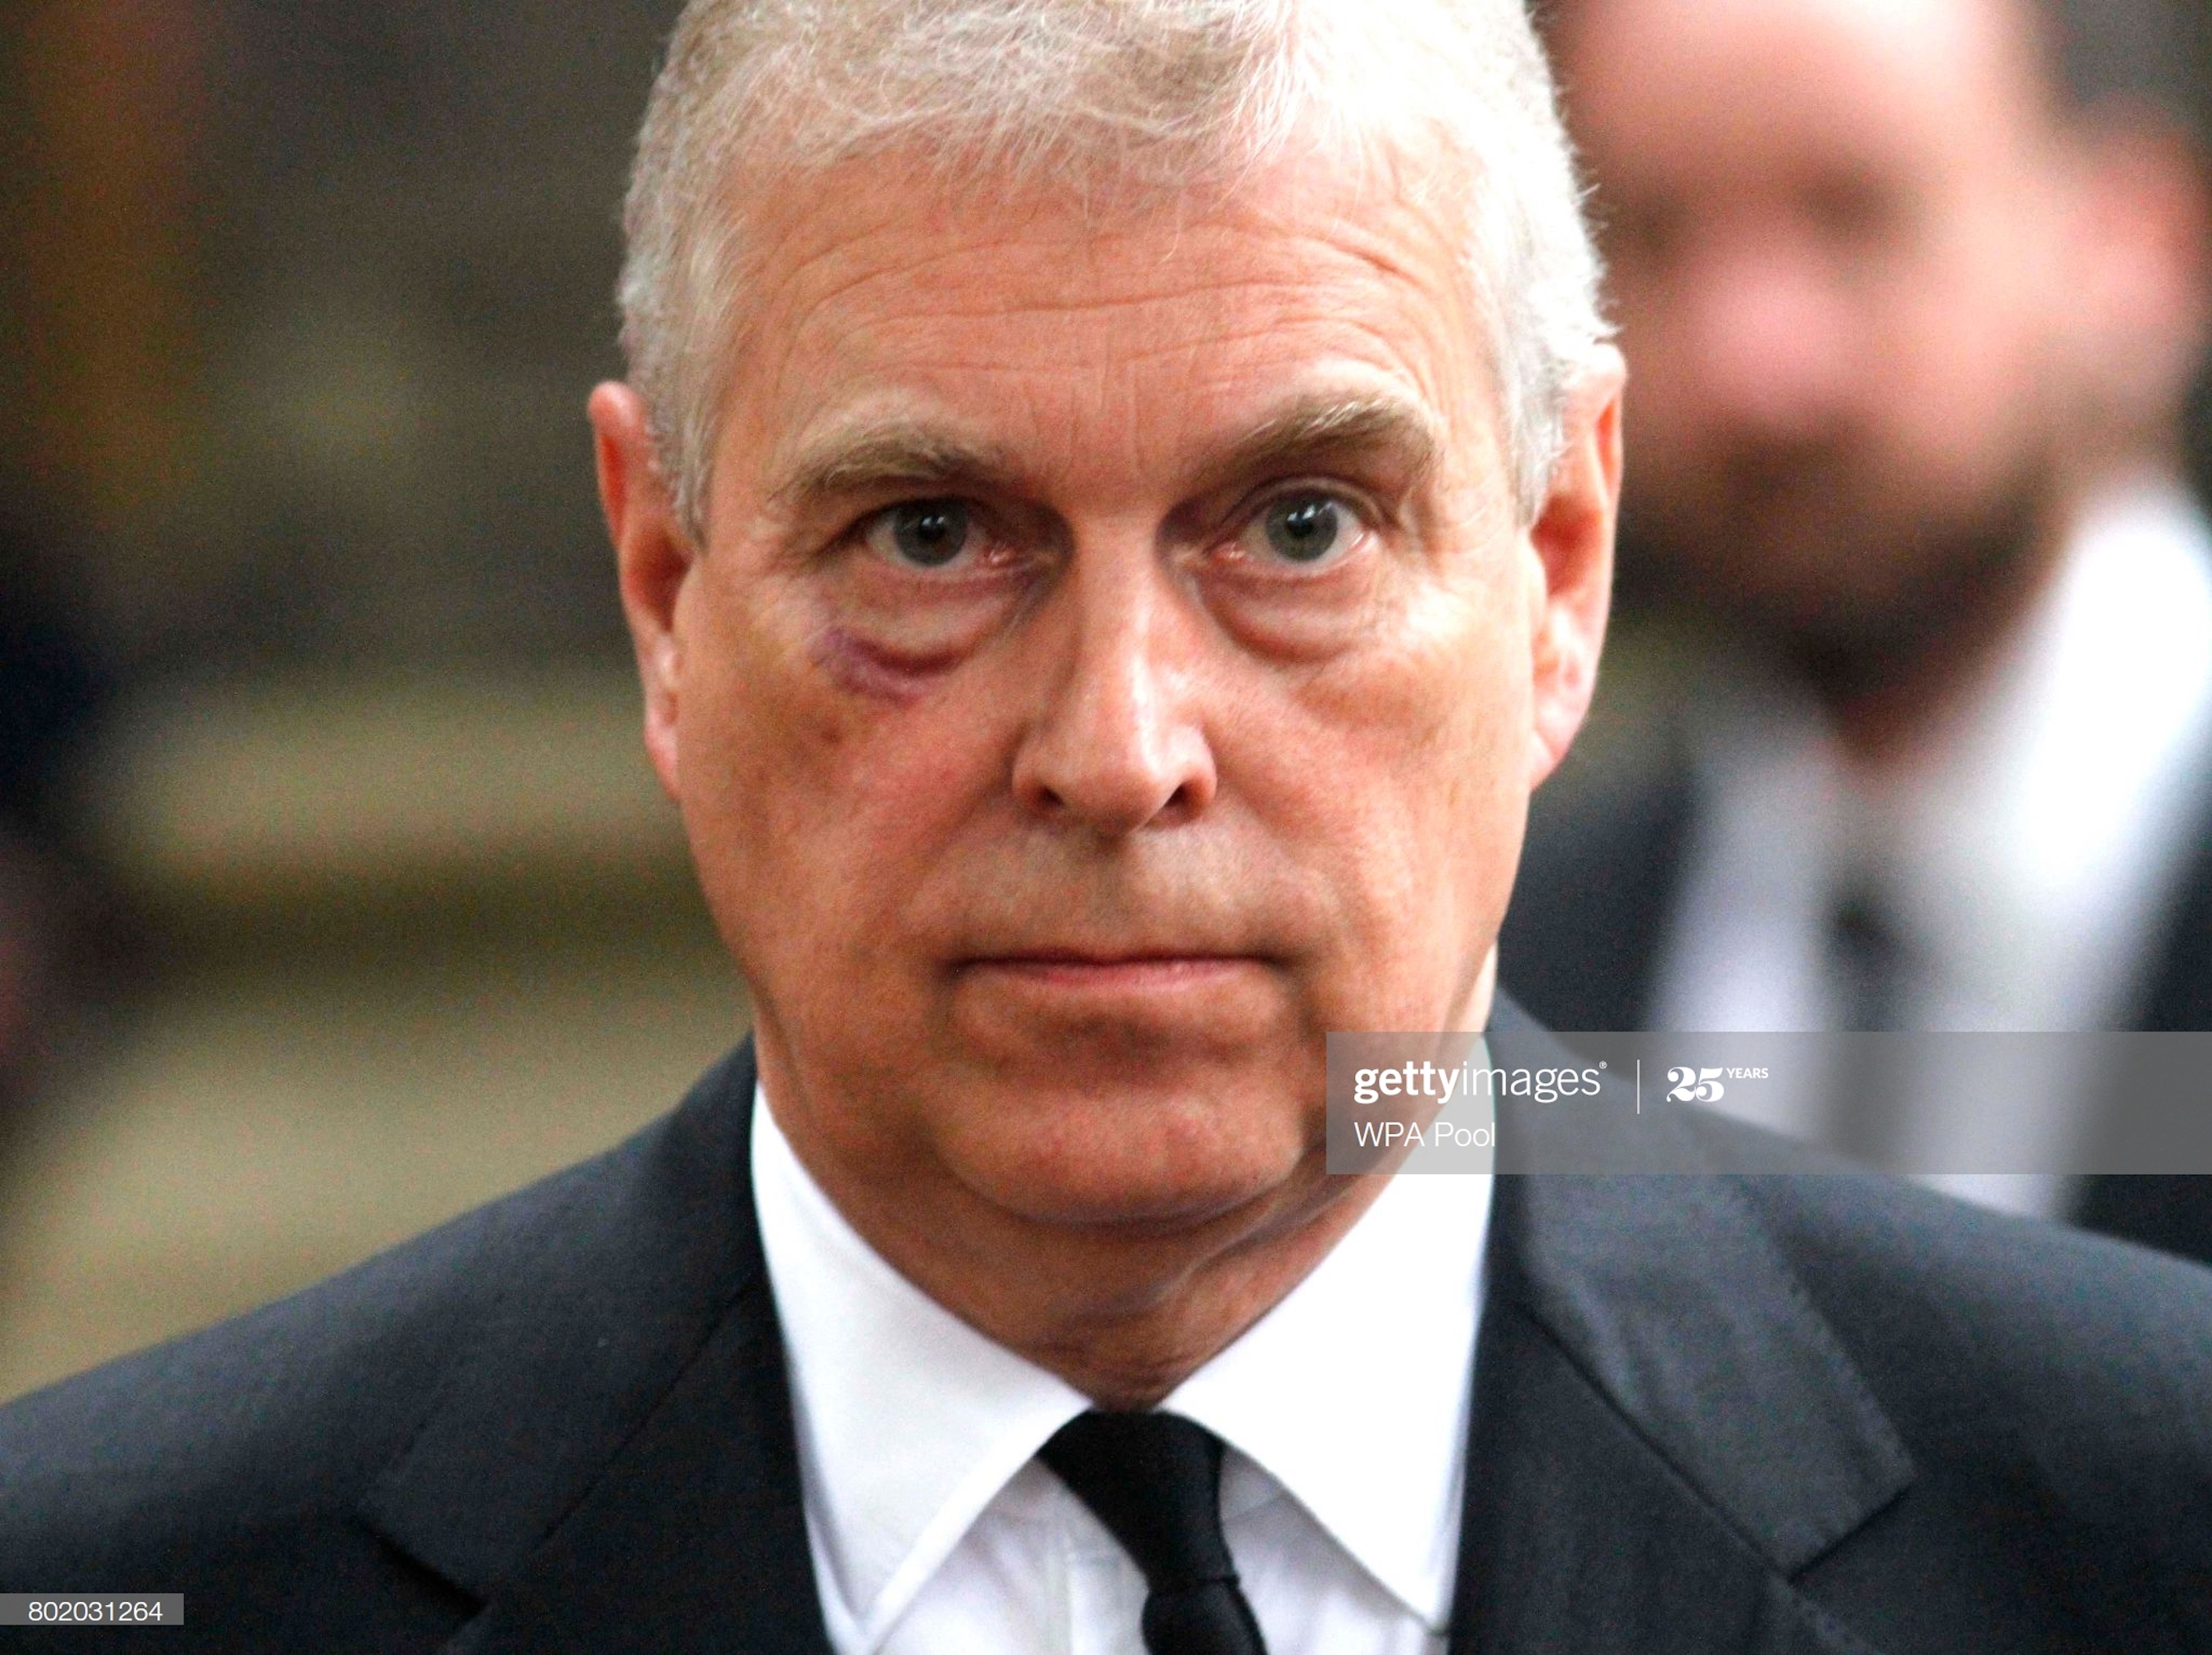 US DEPARTMENT OF JUSTICE DEMANDS UK HANDS OVER PRINCE ANDREW FOR QUESTIONING OVER EPSTEIN LINKS – REPORTS